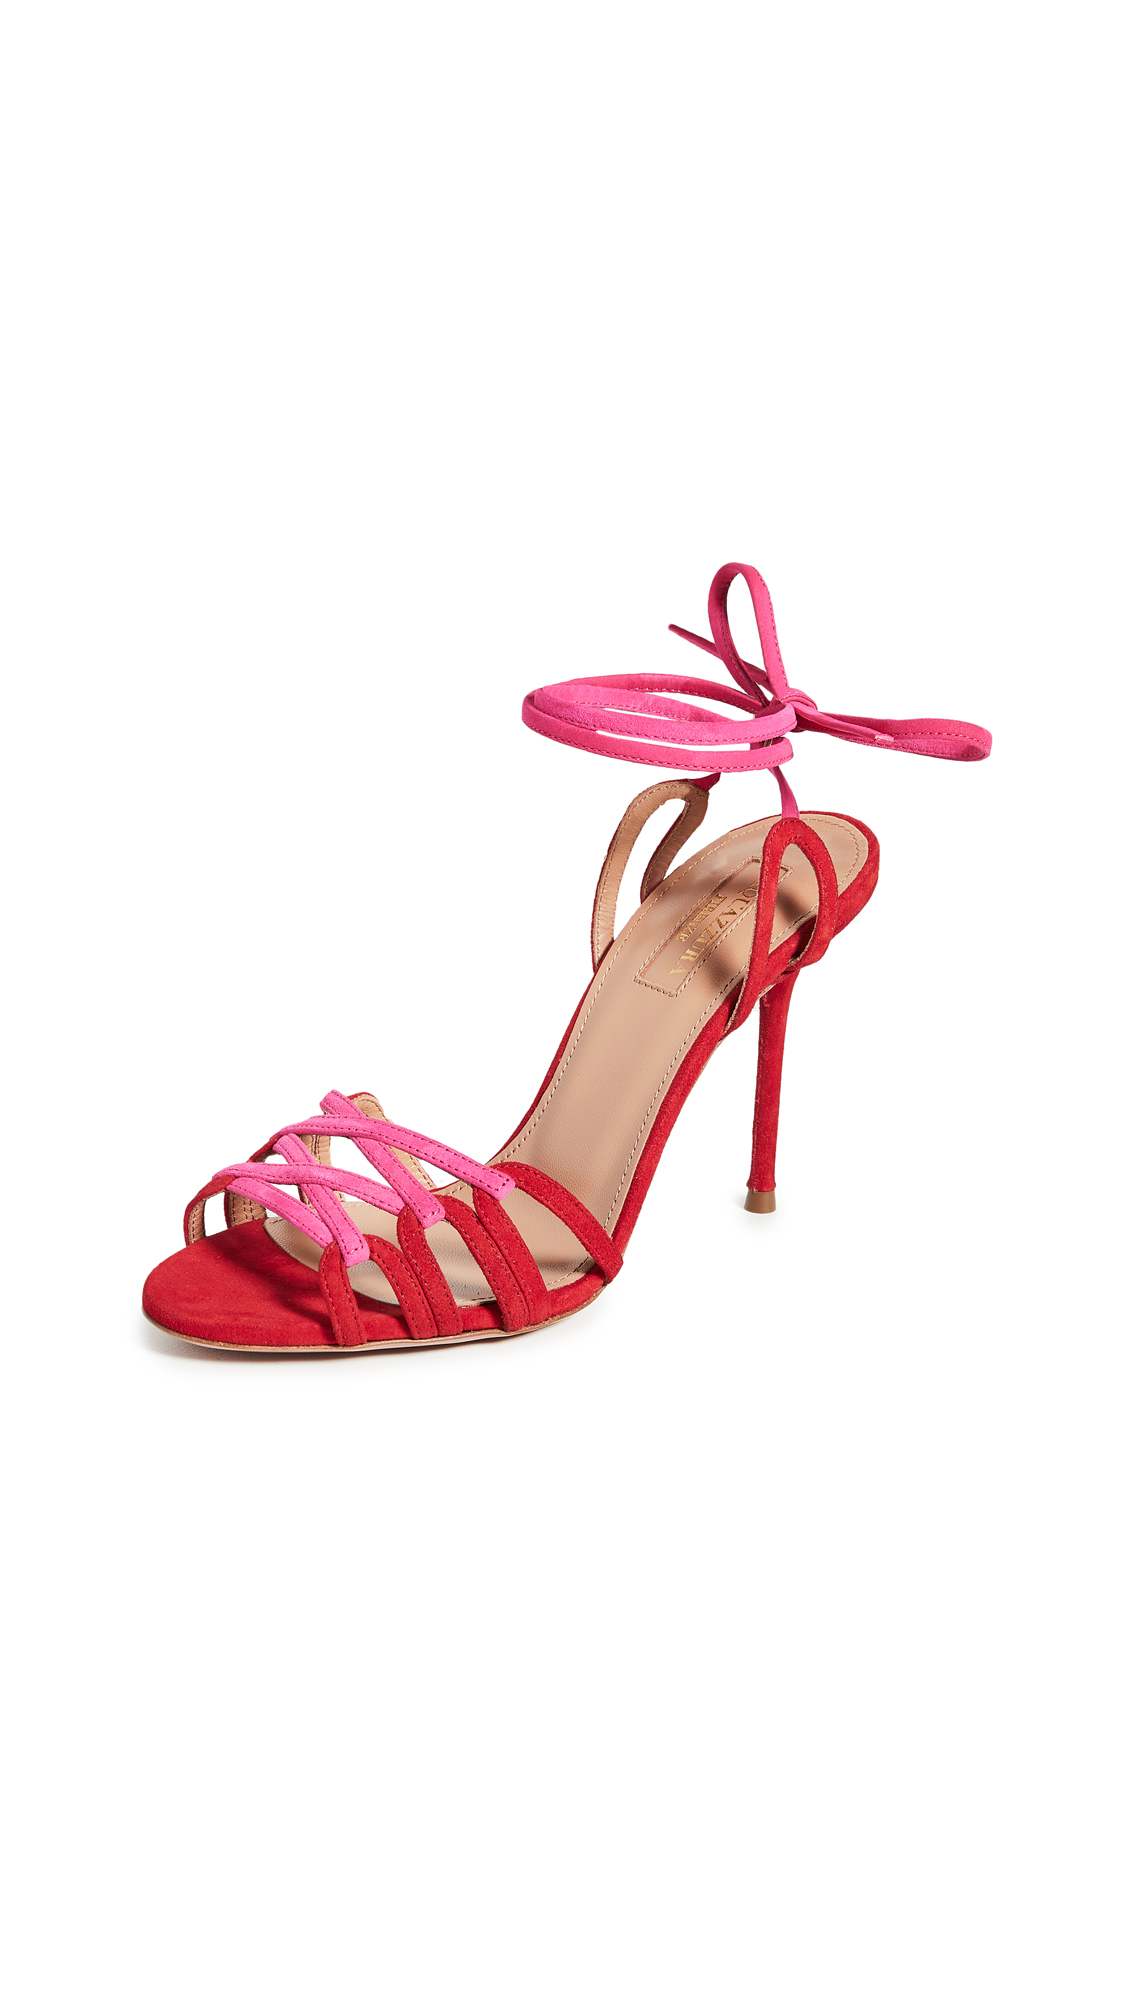 Buy Aquazzura Azur Sandals 95mm online, shop Aquazzura